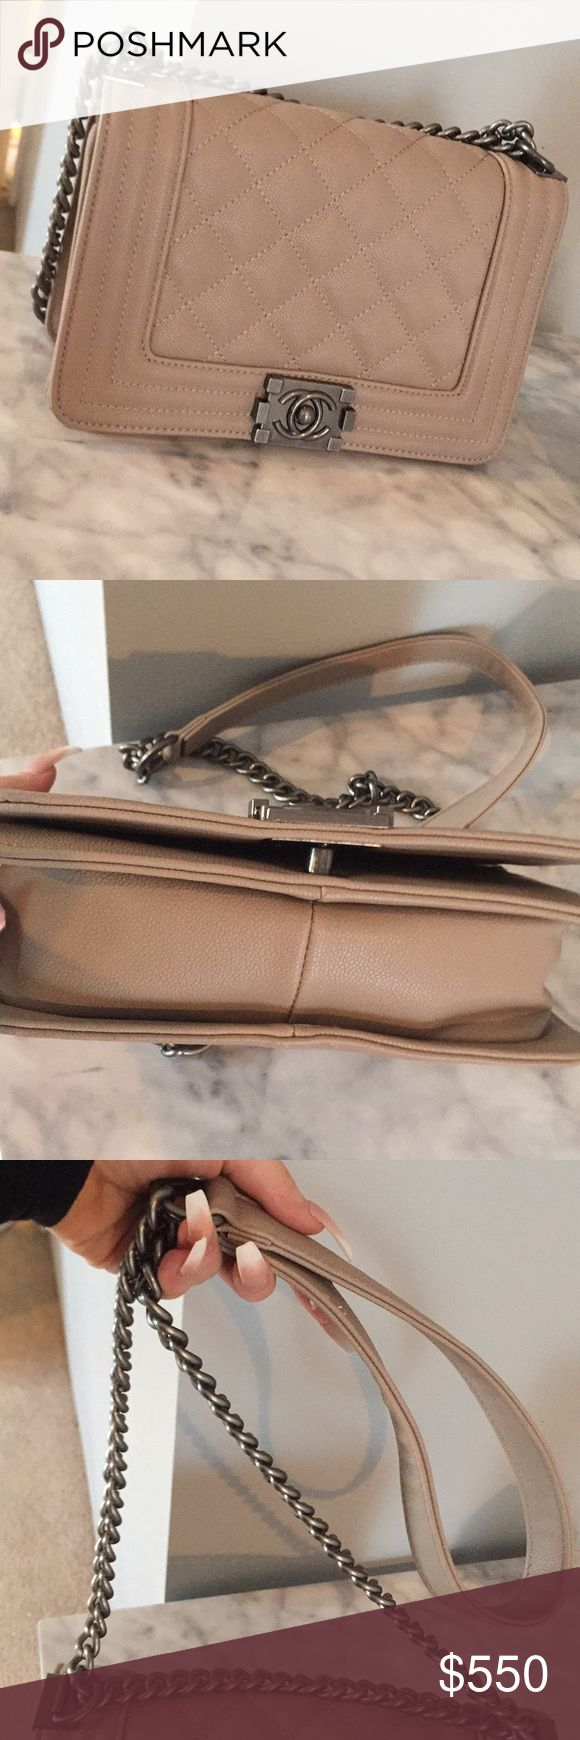 Chanel Tan Jumbo Purse In perfect condition, price r3flects.. no trades please! 🌹🥂 I'm asking $350 for this not $550! CHANEL Bags Shoulder Bags